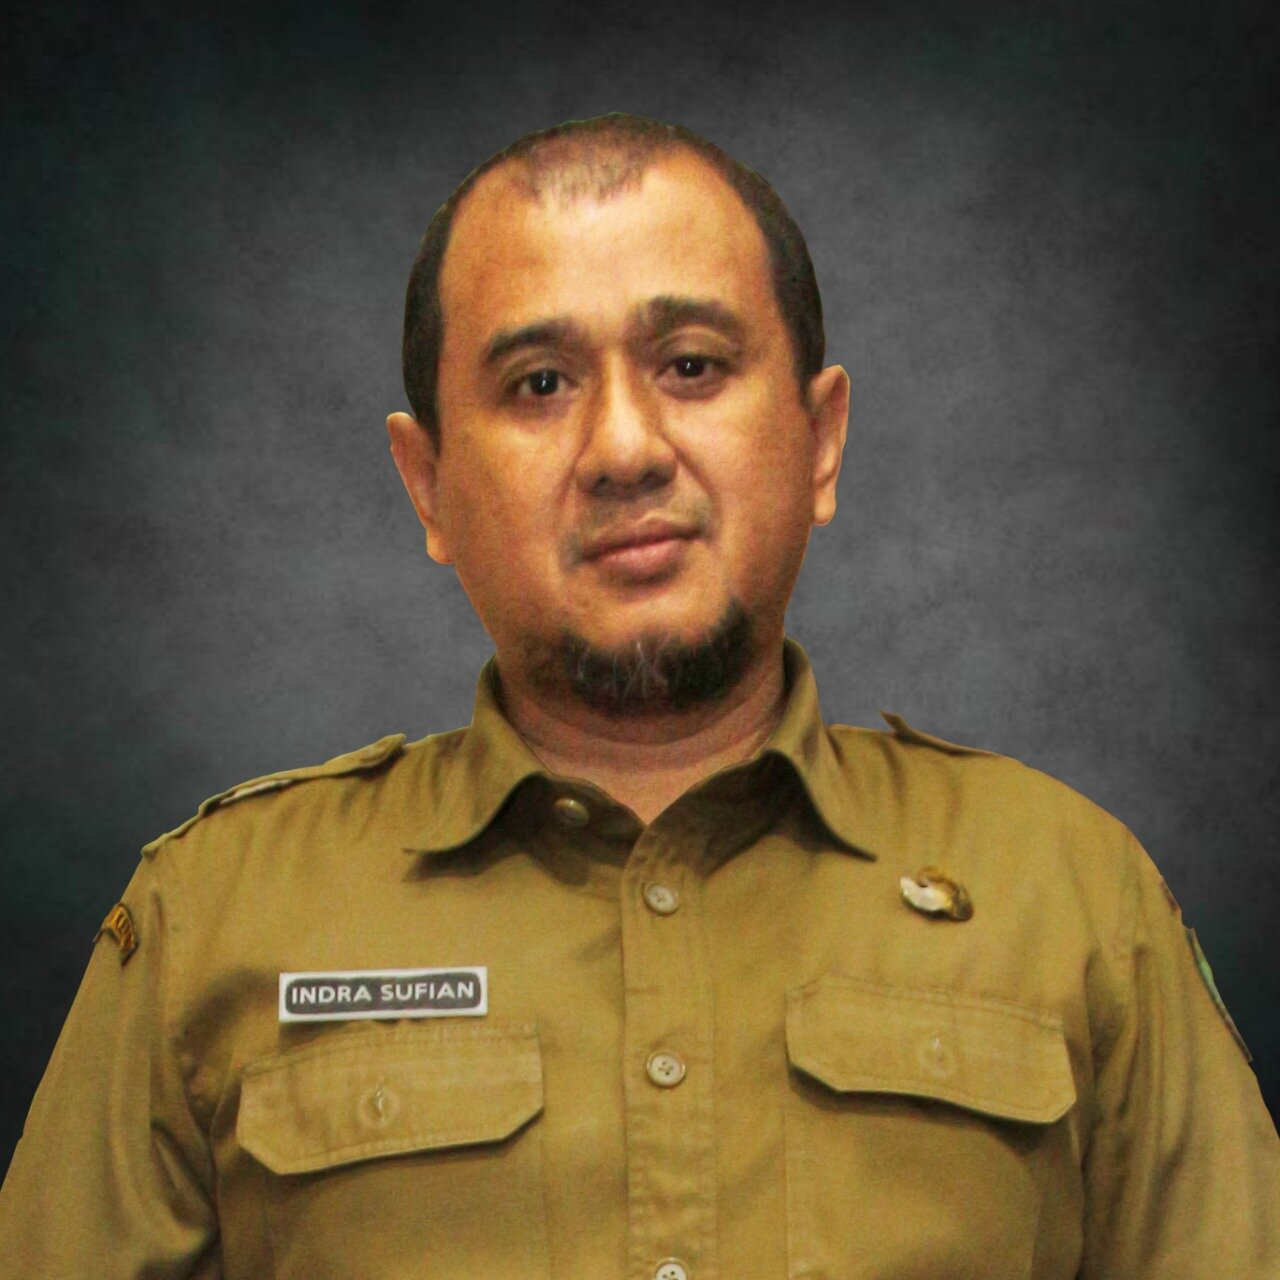 Indra Sufian, M.Eng